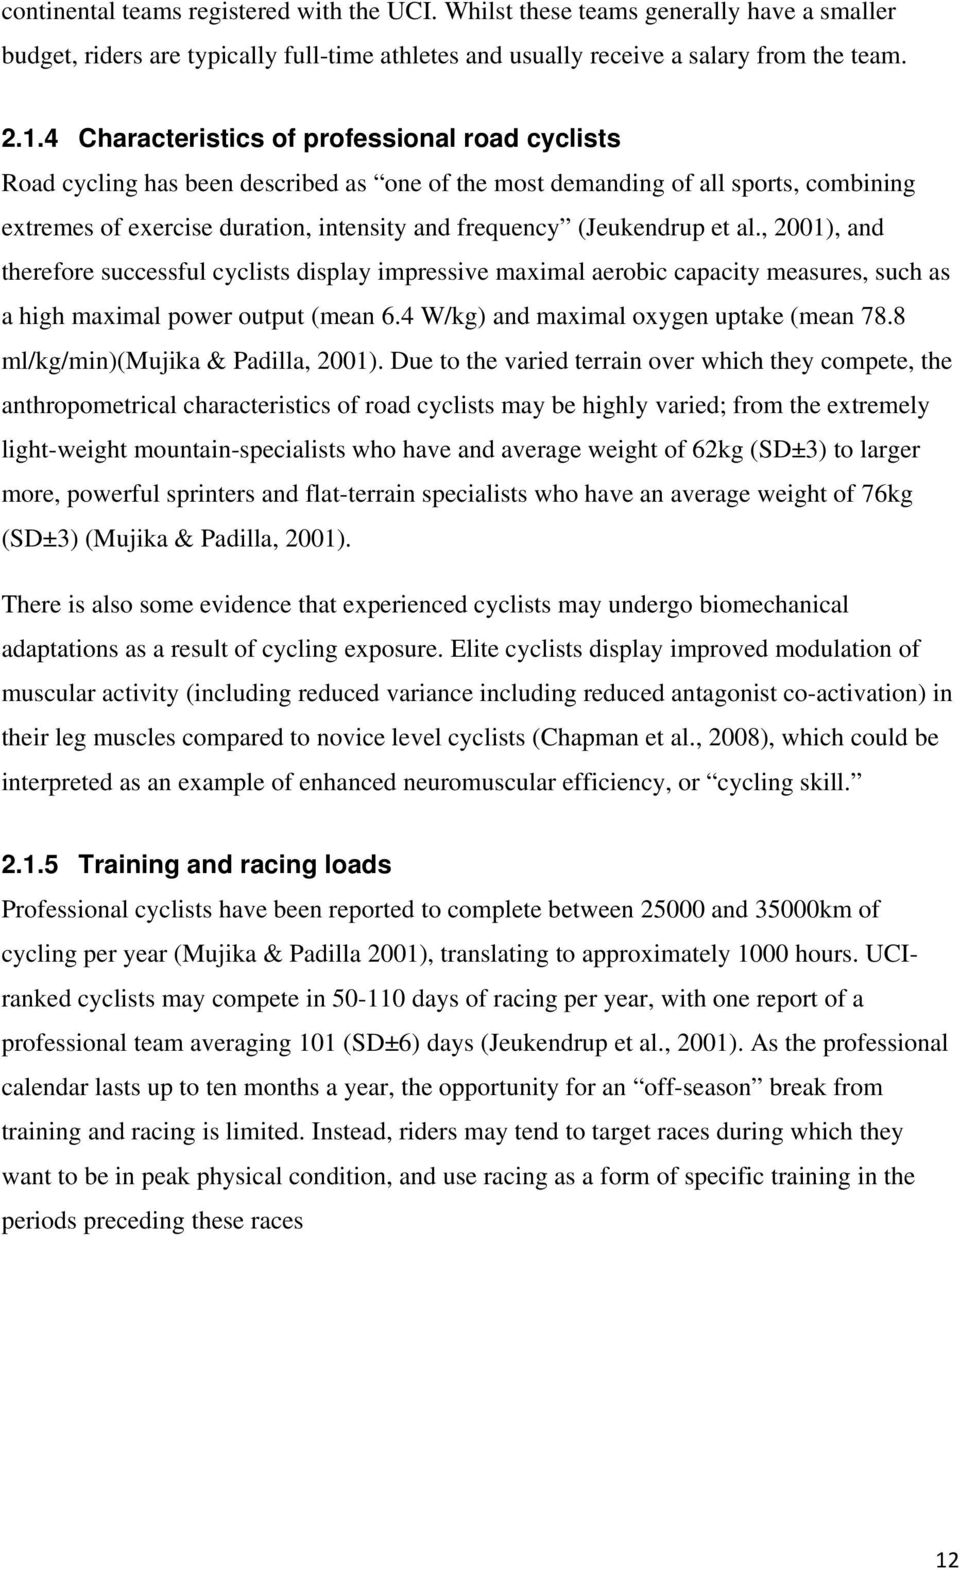 (Jeukendrup et al., 2001), and therefore successful cyclists display impressive maximal aerobic capacity measures, such as a high maximal power output (mean 6.